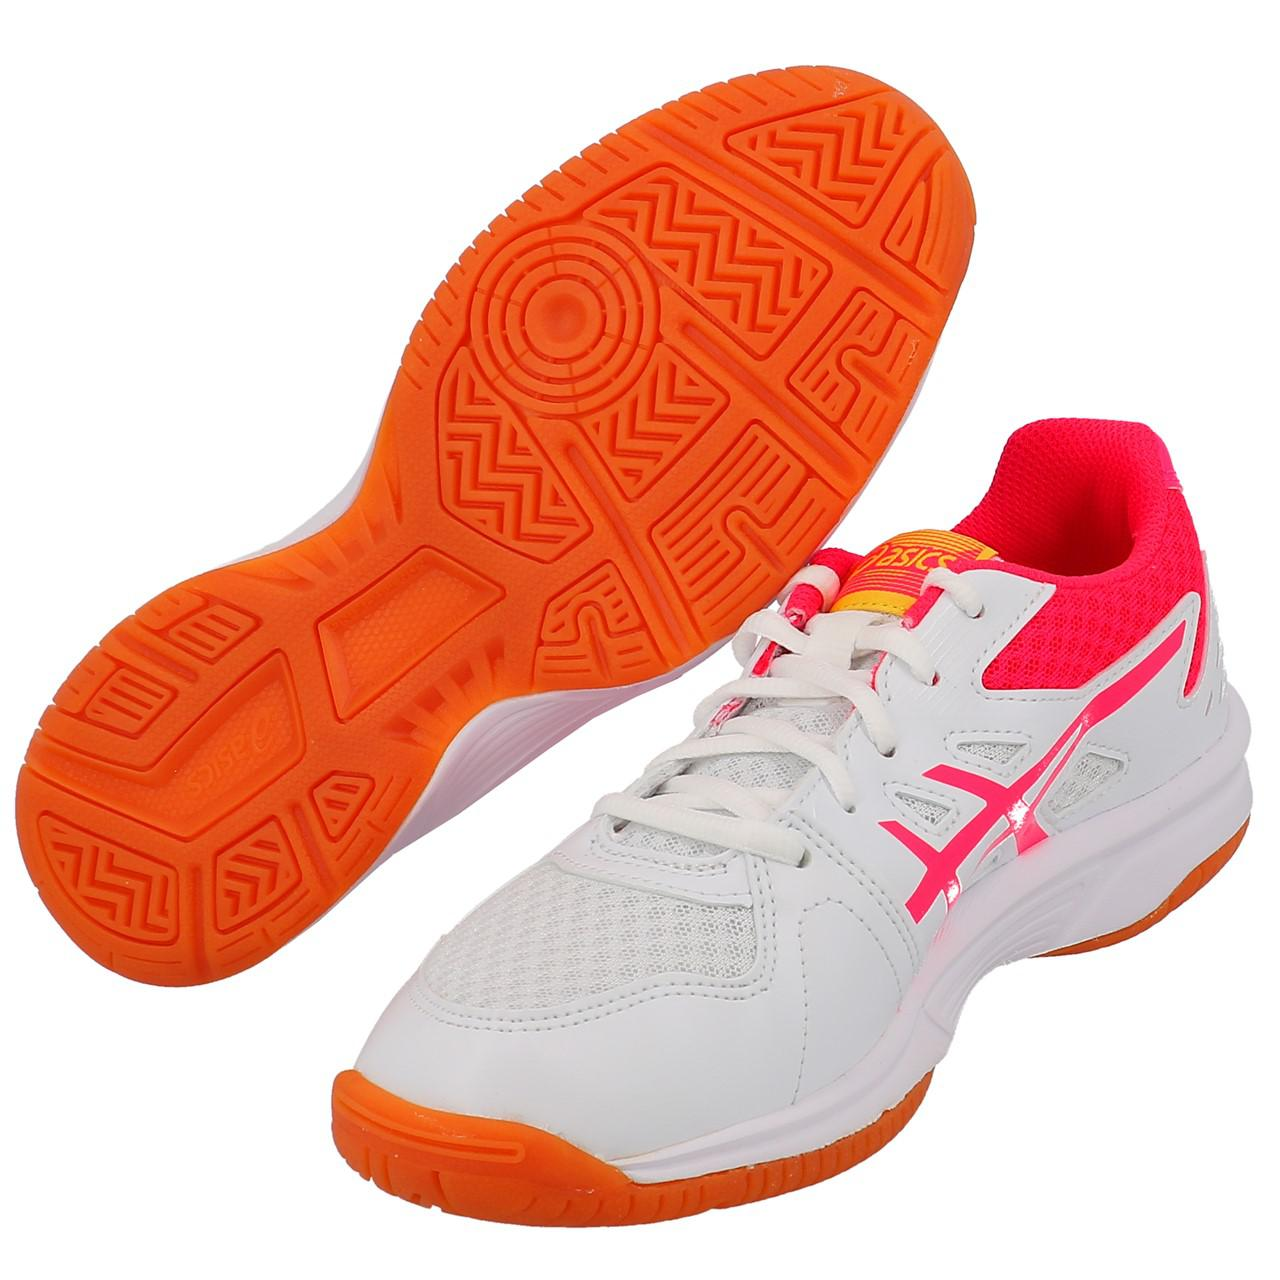 Shoes-Volleyball-Basketball-Asics-Upcourt-3-Wht-Indoor-G-White-19557-New thumbnail 5